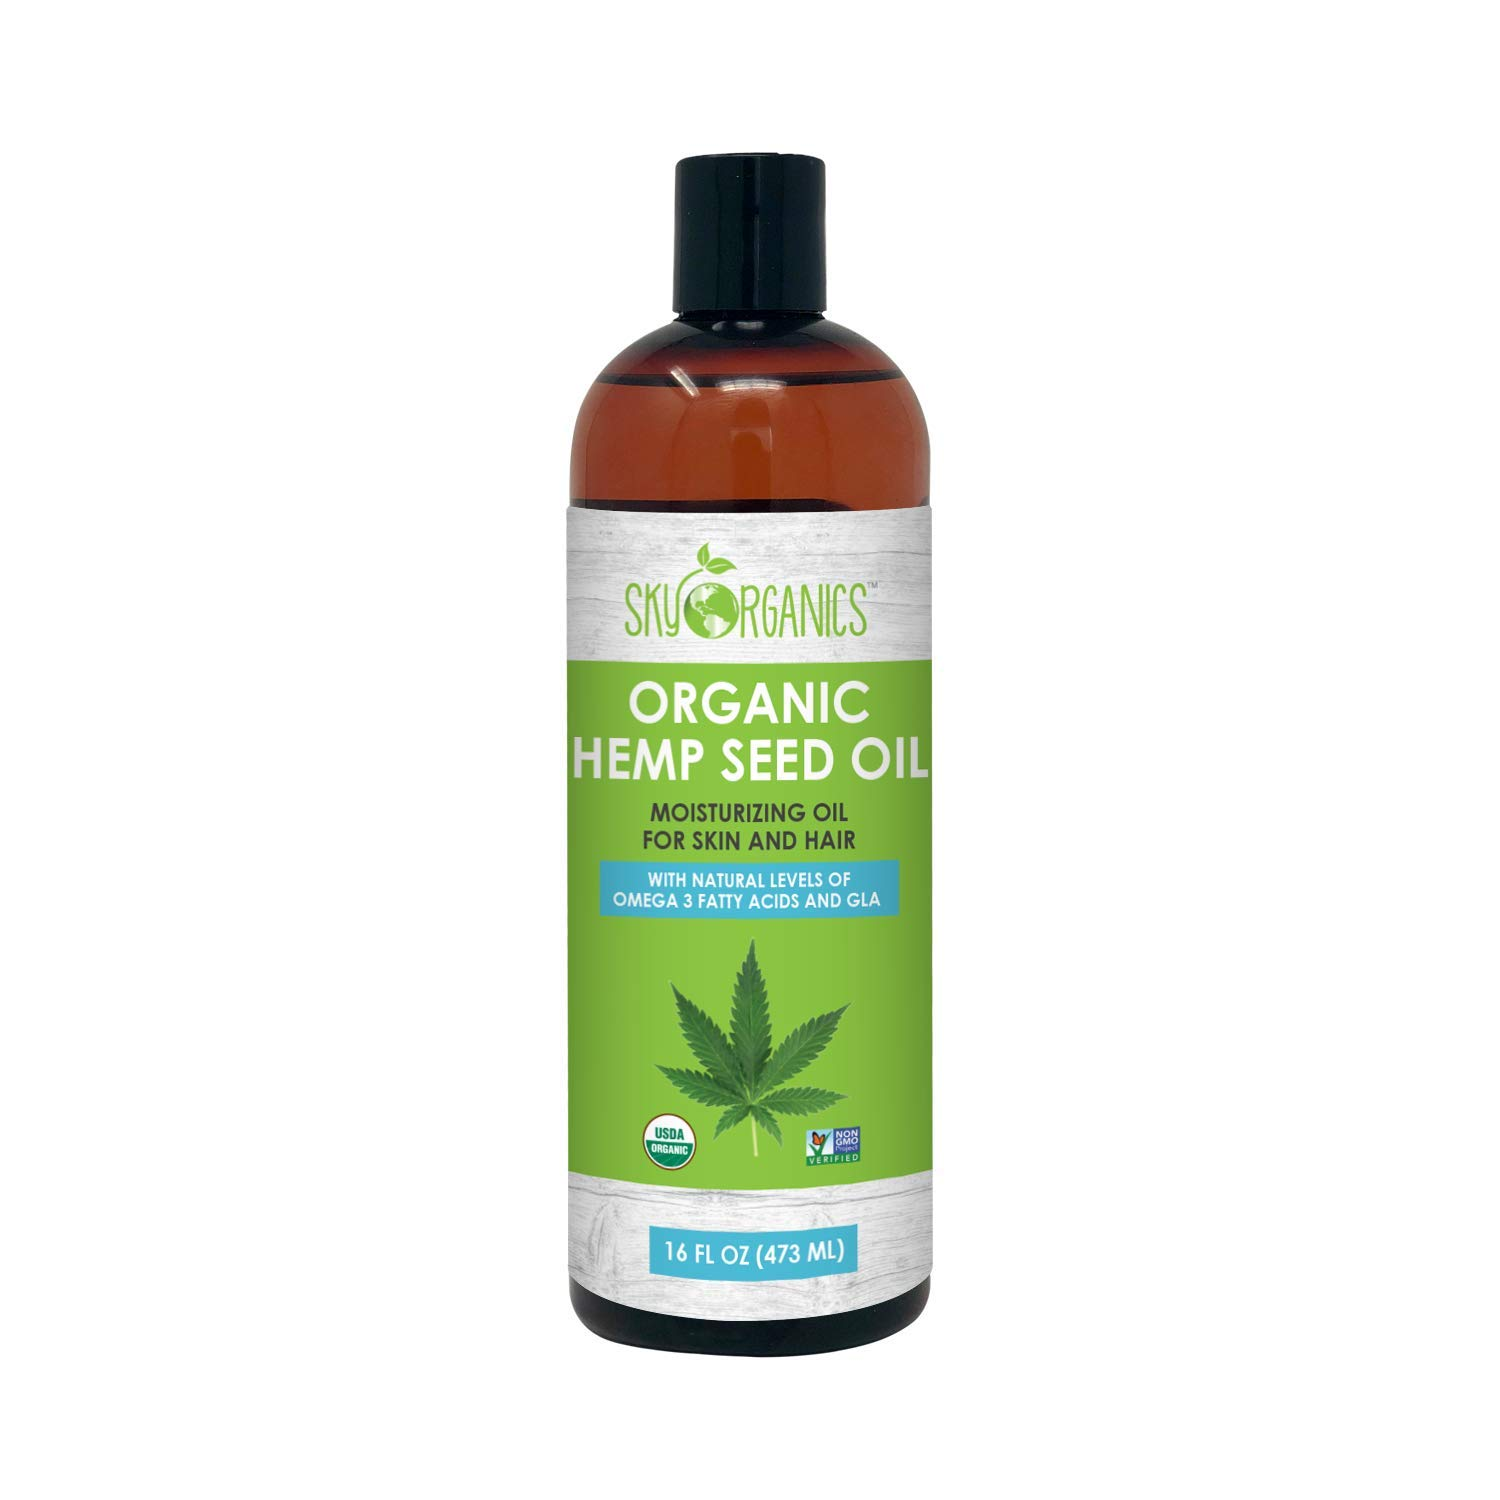 Organic Hemp Seed Oil by Sky Organics (Large 16oz) 100% Pure Cold-Pressed Hemp Oil –High in Omega 3-6-9 Fatty Acids- Not CBD oil- Sativa Oil- Food grade, Non-GMO, Cruelty Free- Great for dry skin